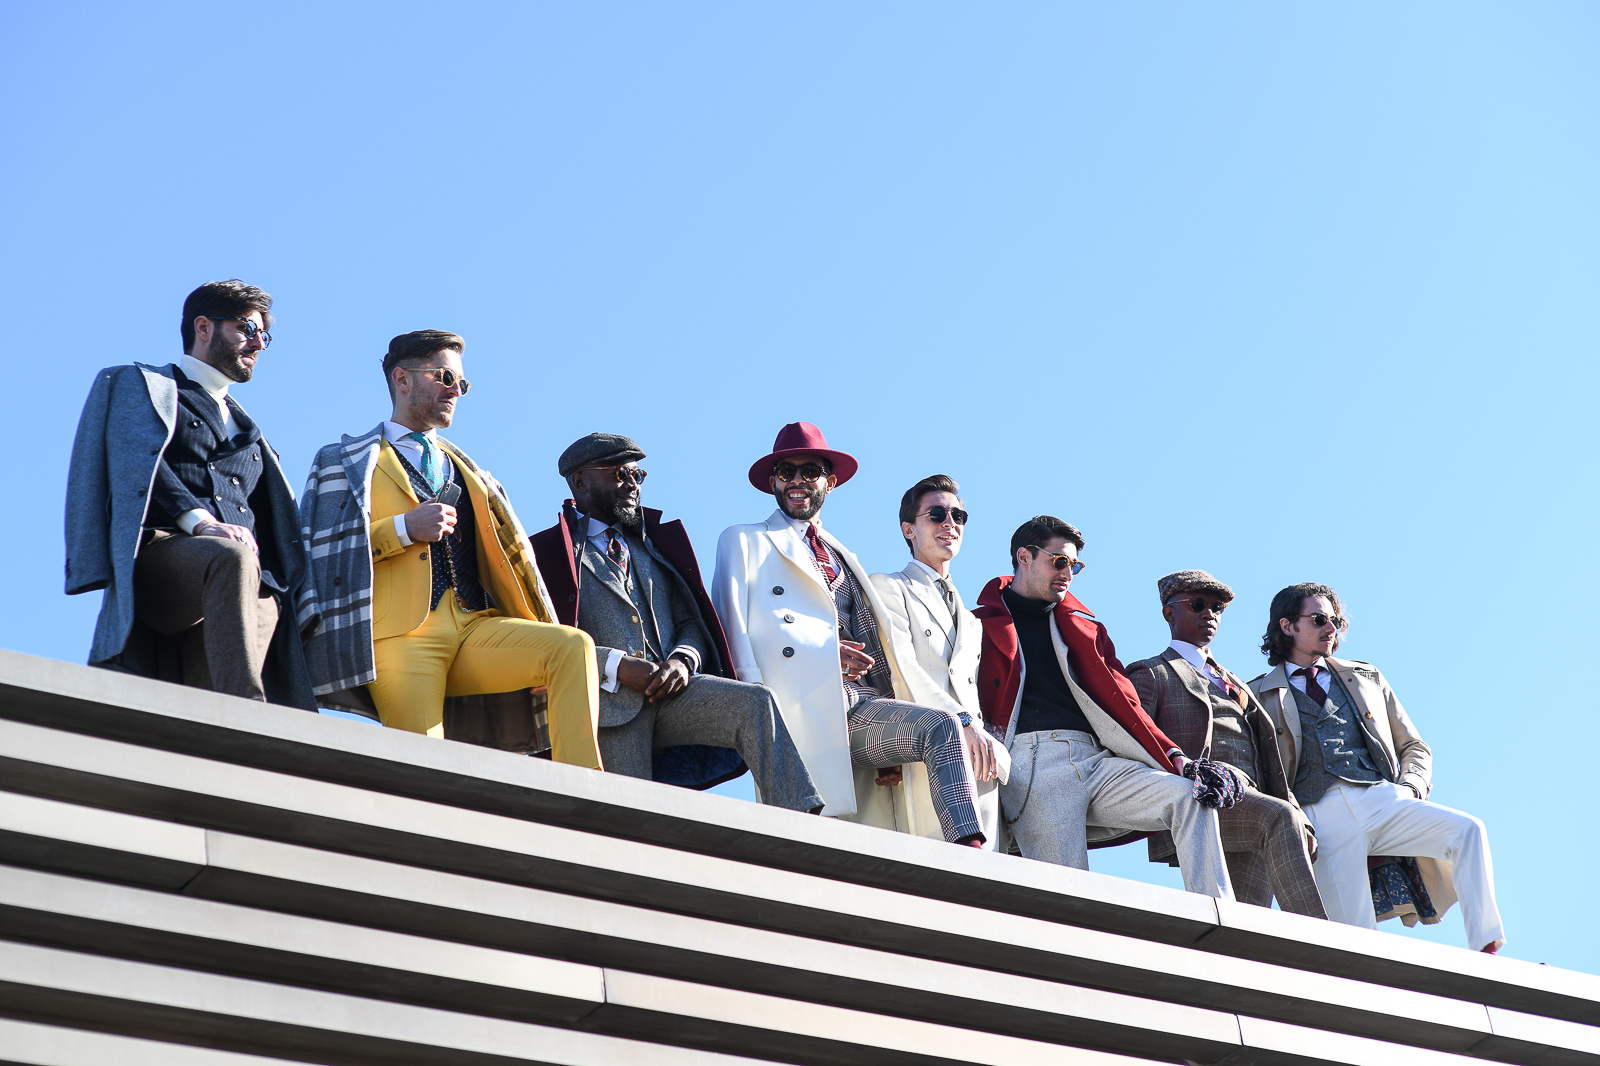 The influencers of Pitti are posing on top of the exhibition spaces looking over the crowd and photographs